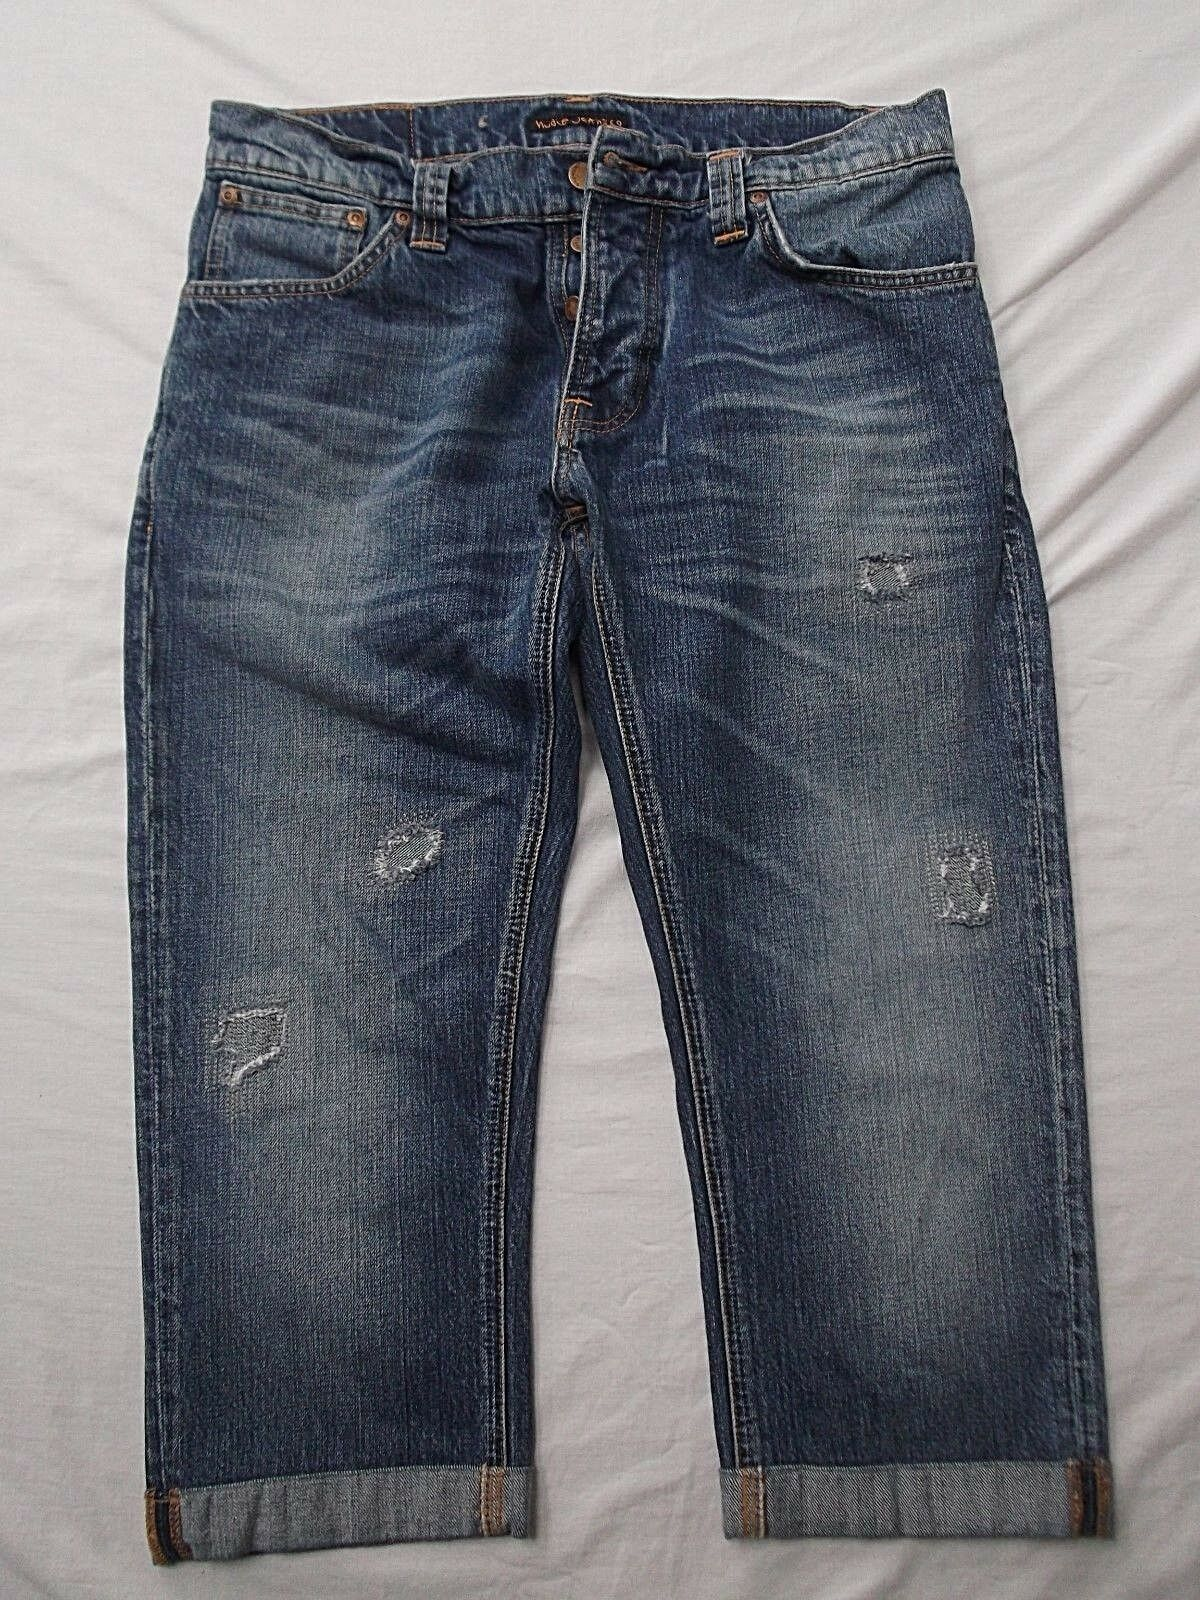 Nudie Grim Tim mended distress denim jeans 34x22 cut off knee shorts button fly